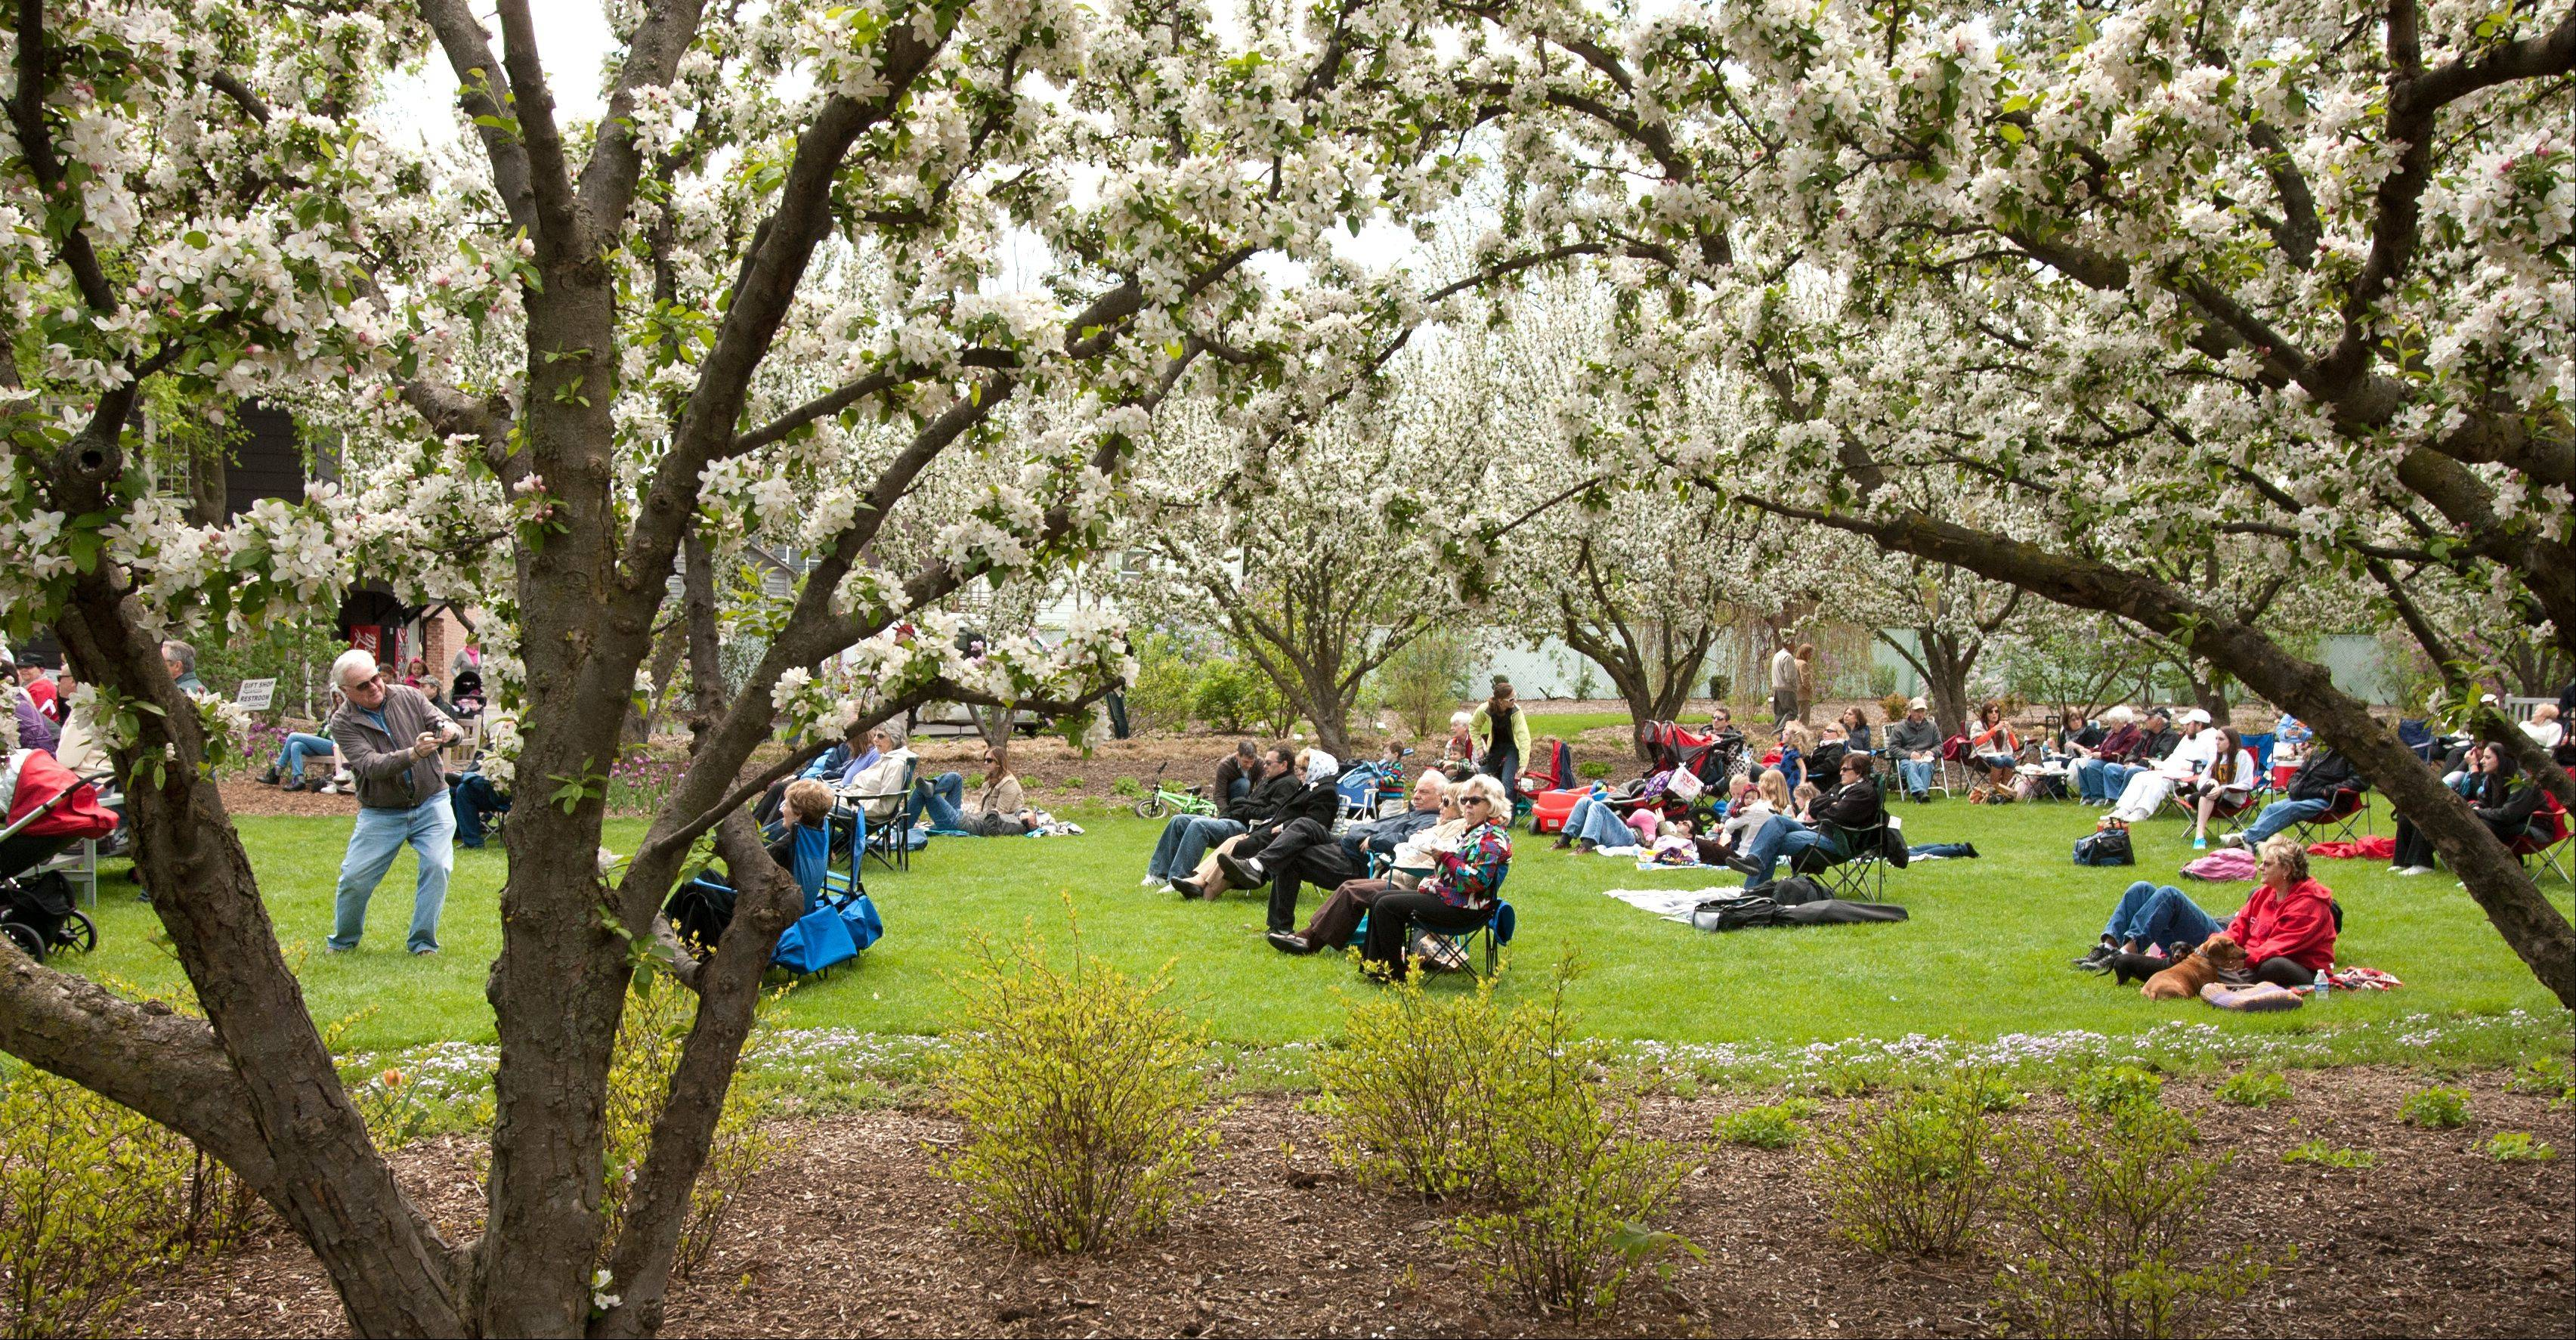 Music lovers and families enjoy a Lilac Time concert featuring Bill O'Connell's Chicago Skyliners Big Band Sunday at Lilacia Park in Lombard.